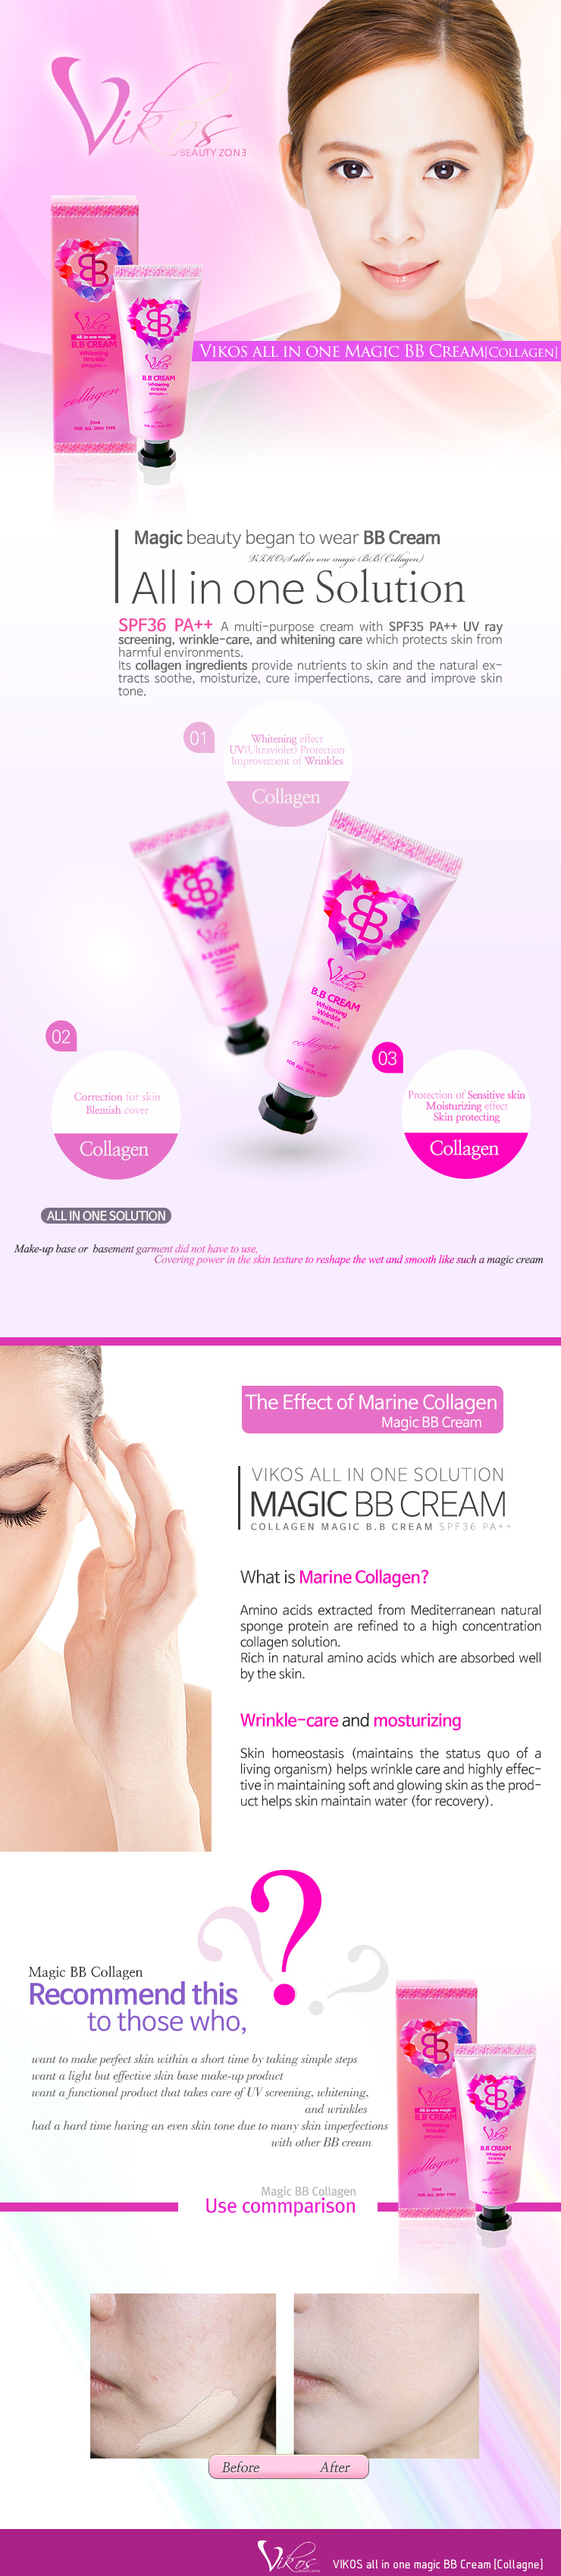 [VIKOS] All in one Magic BB (Collagen)